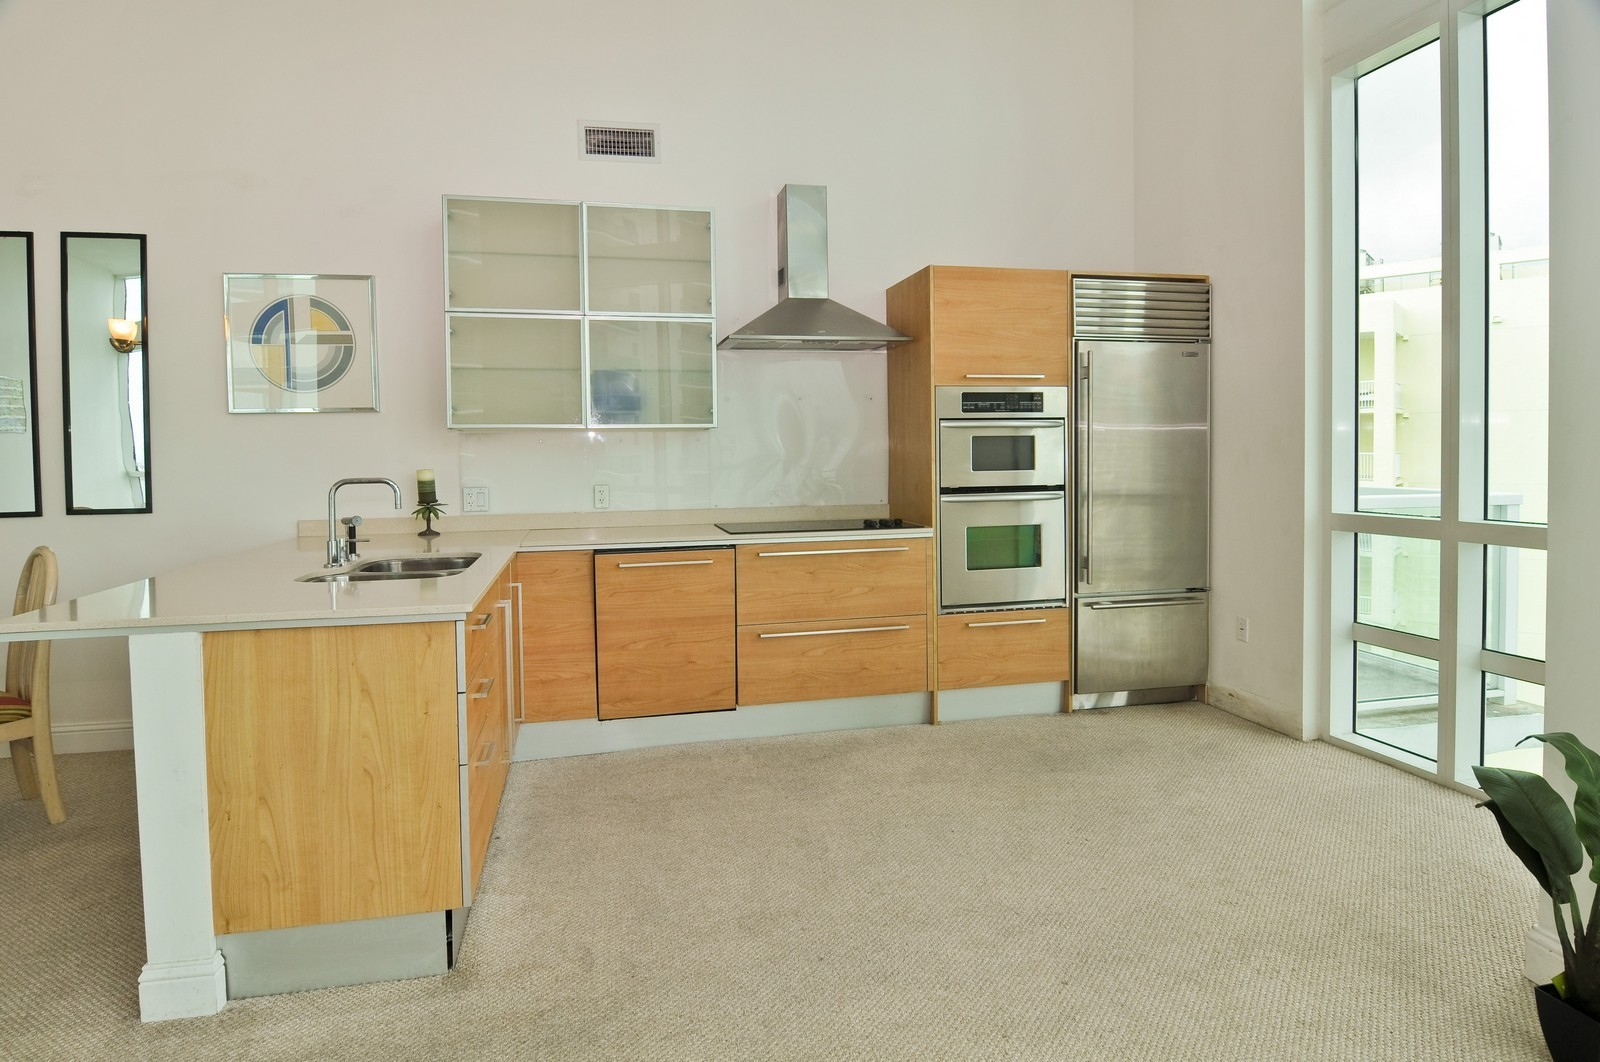 Real Estate Photography - 218 SE 14th St, PH 2, Miami, FL, 33131 - Kitchen